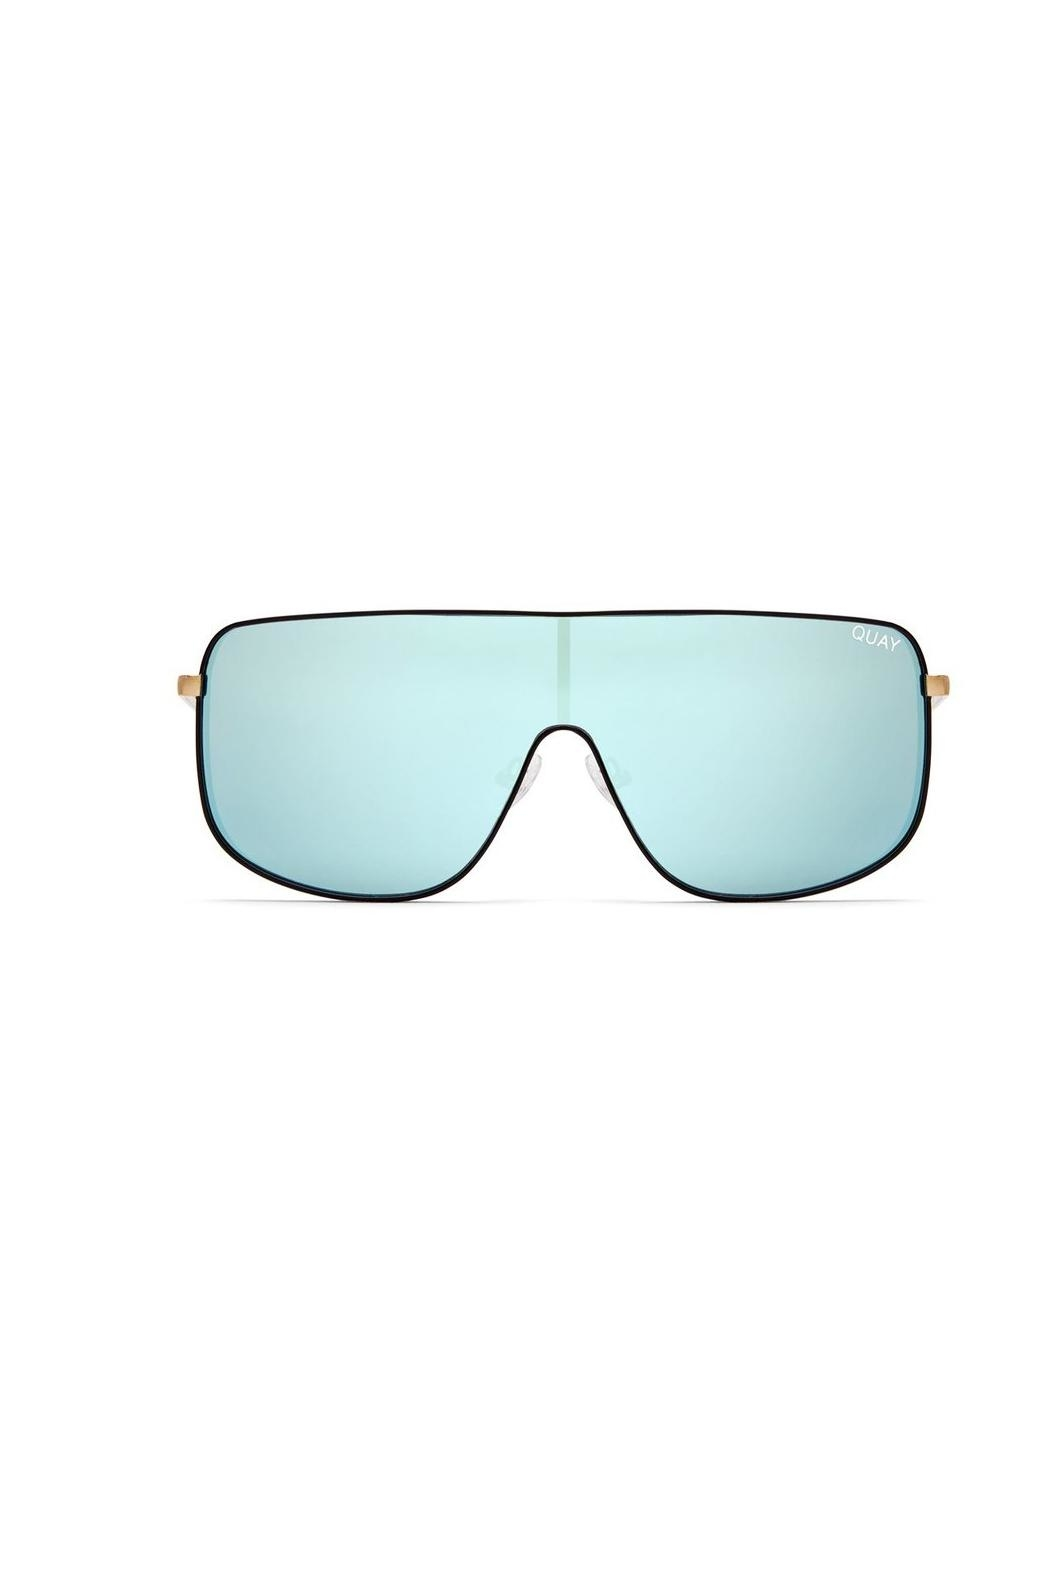 65b7cd6683 Quay Australia Unbothered Sunglasses from New Jersey by Pretty Edgy ...